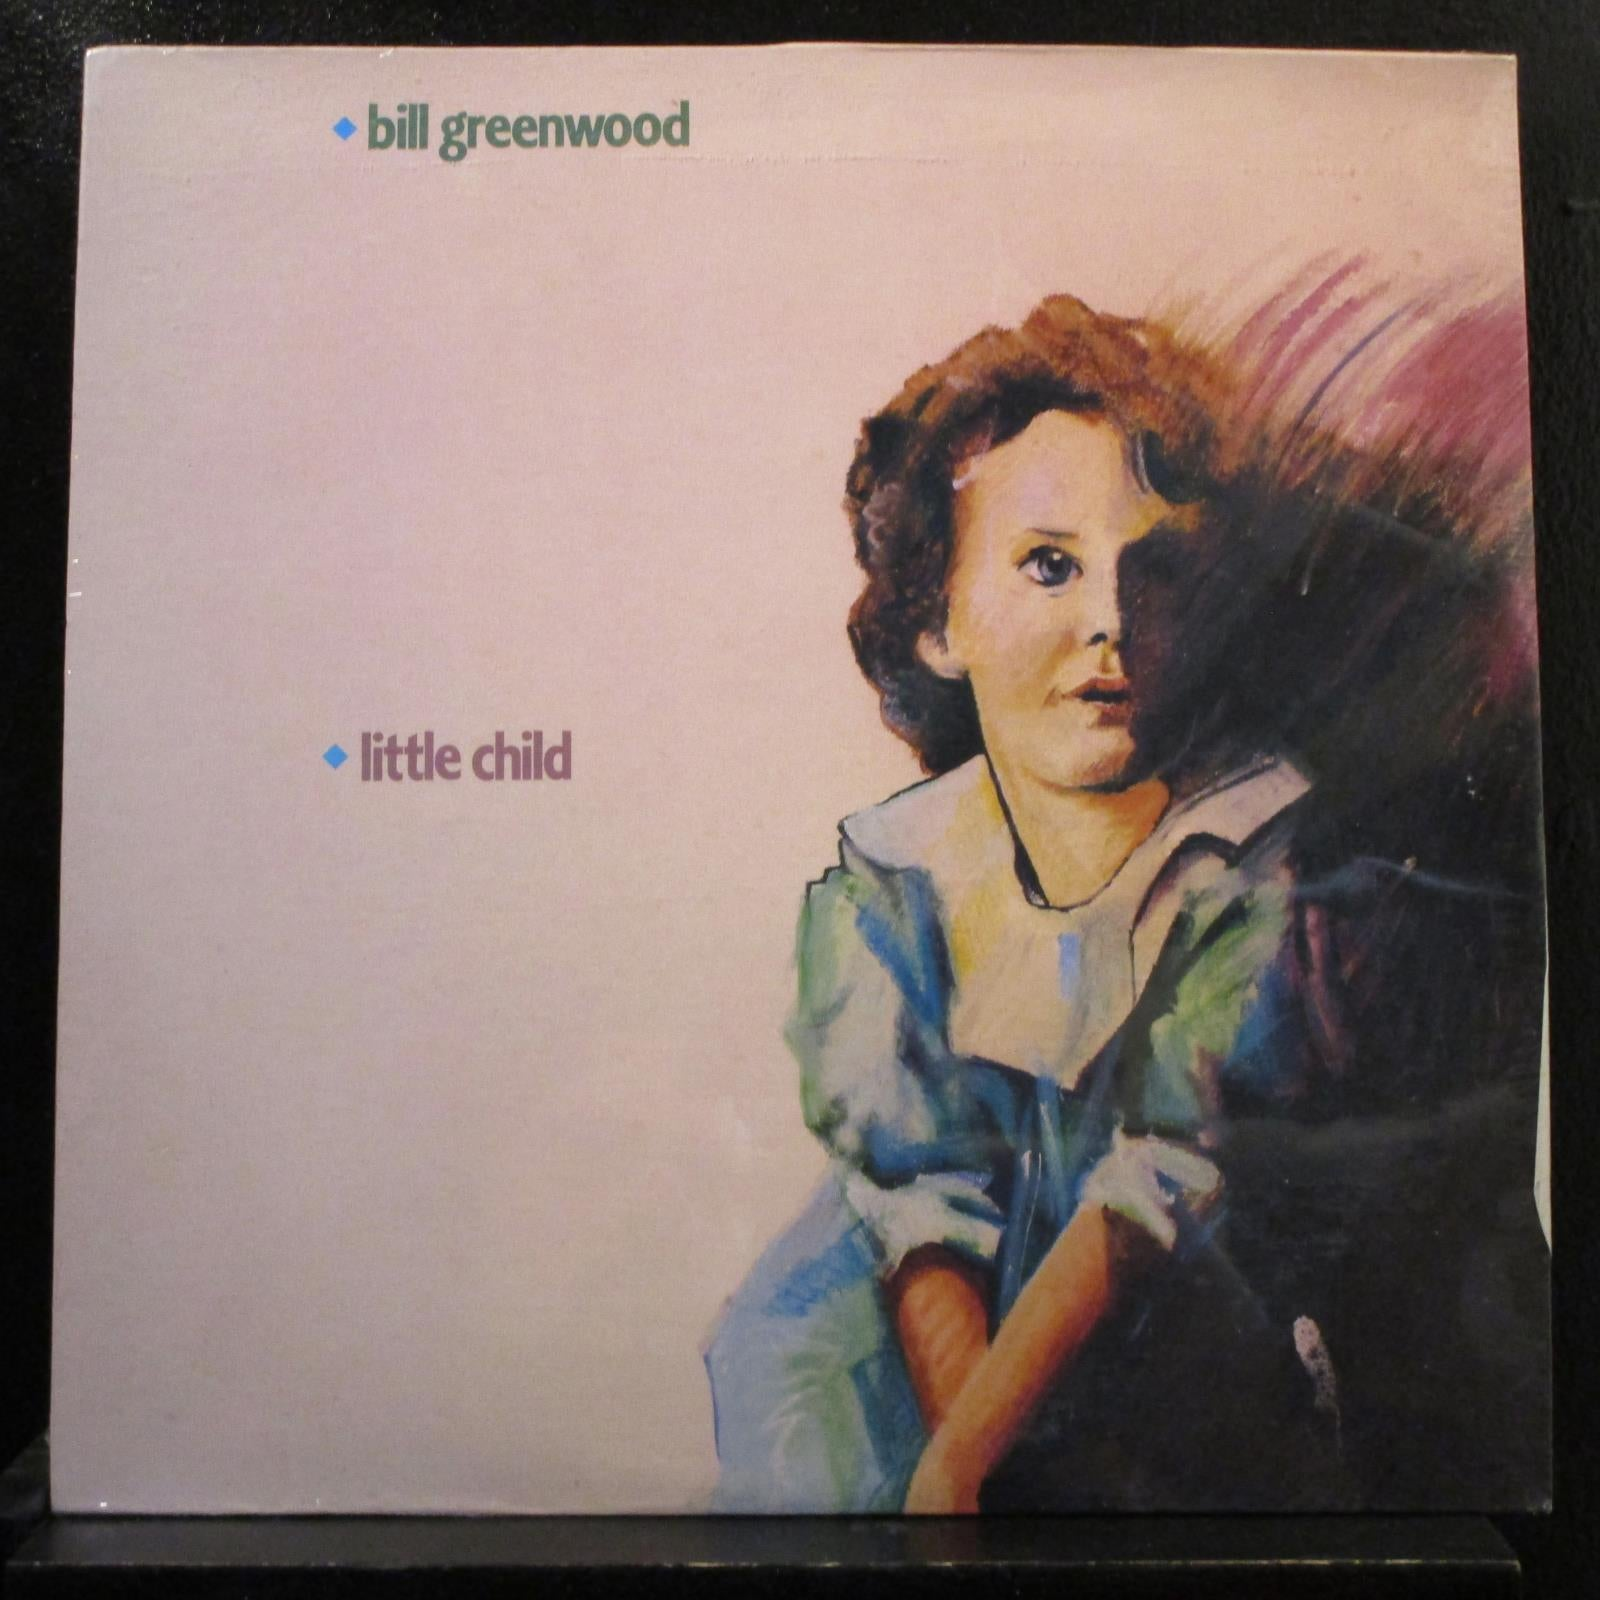 Bill Greenwood - Little Child LP New Sealed MN Private Folk Vinyl Record